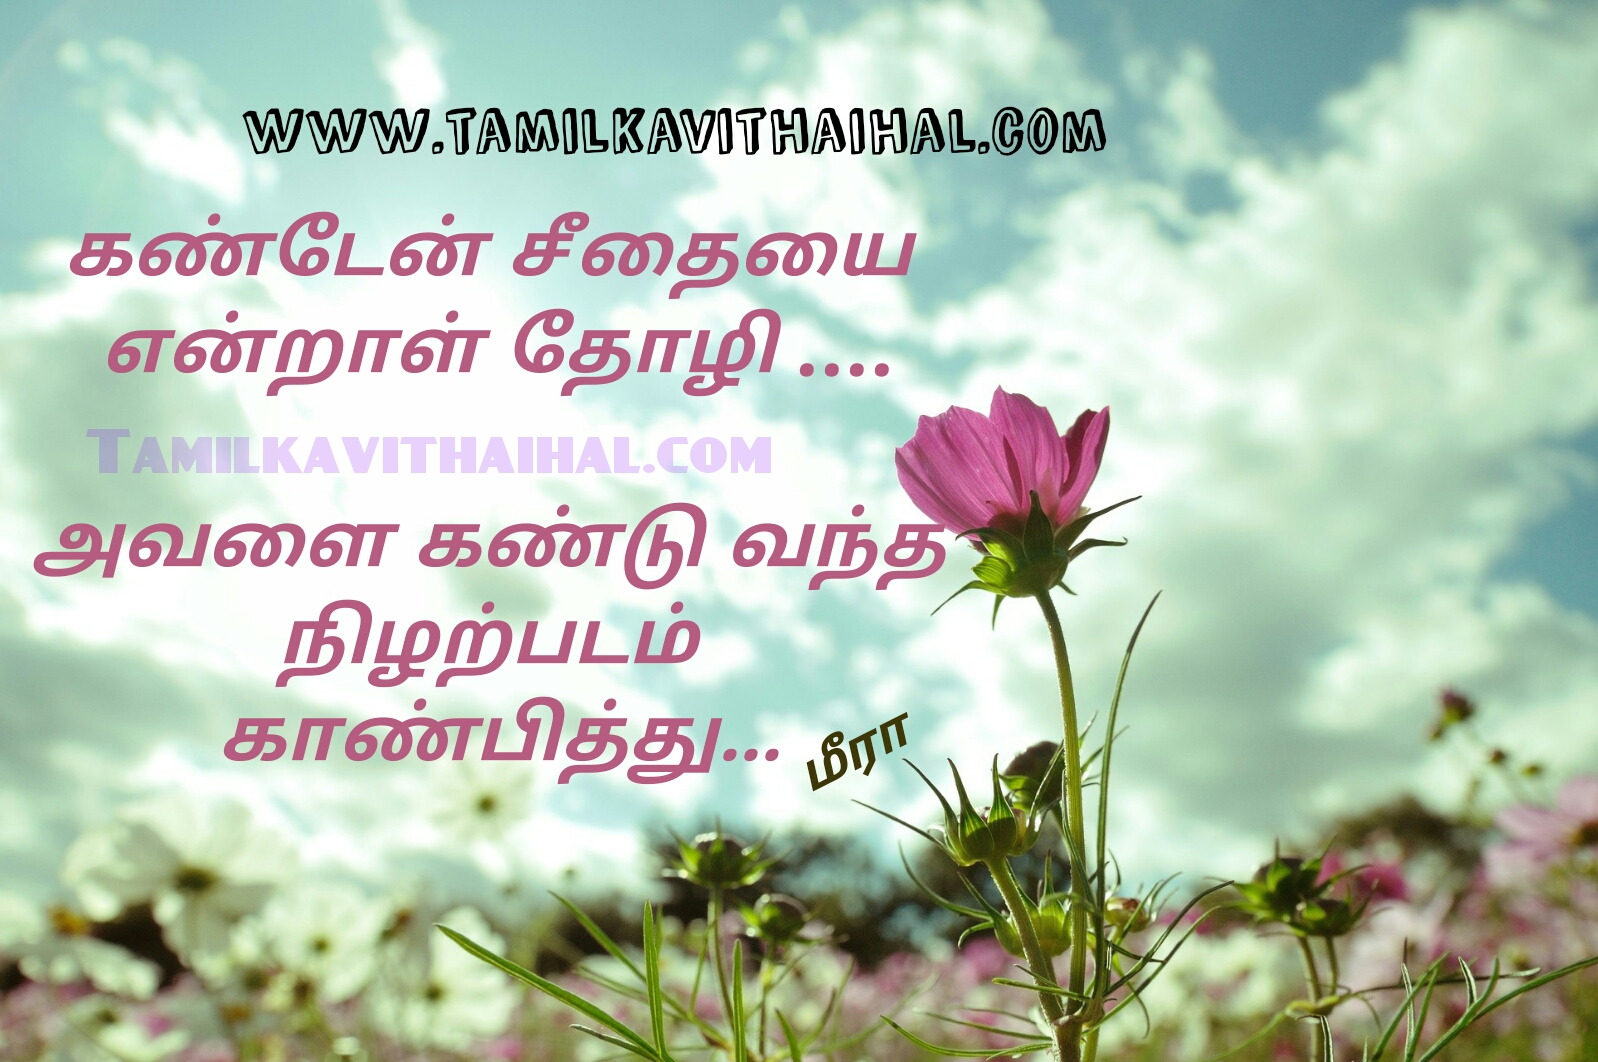 Kanden seethai photo love boys feeling true affection kadhal kavithai in tmail meera poem whatsapp images